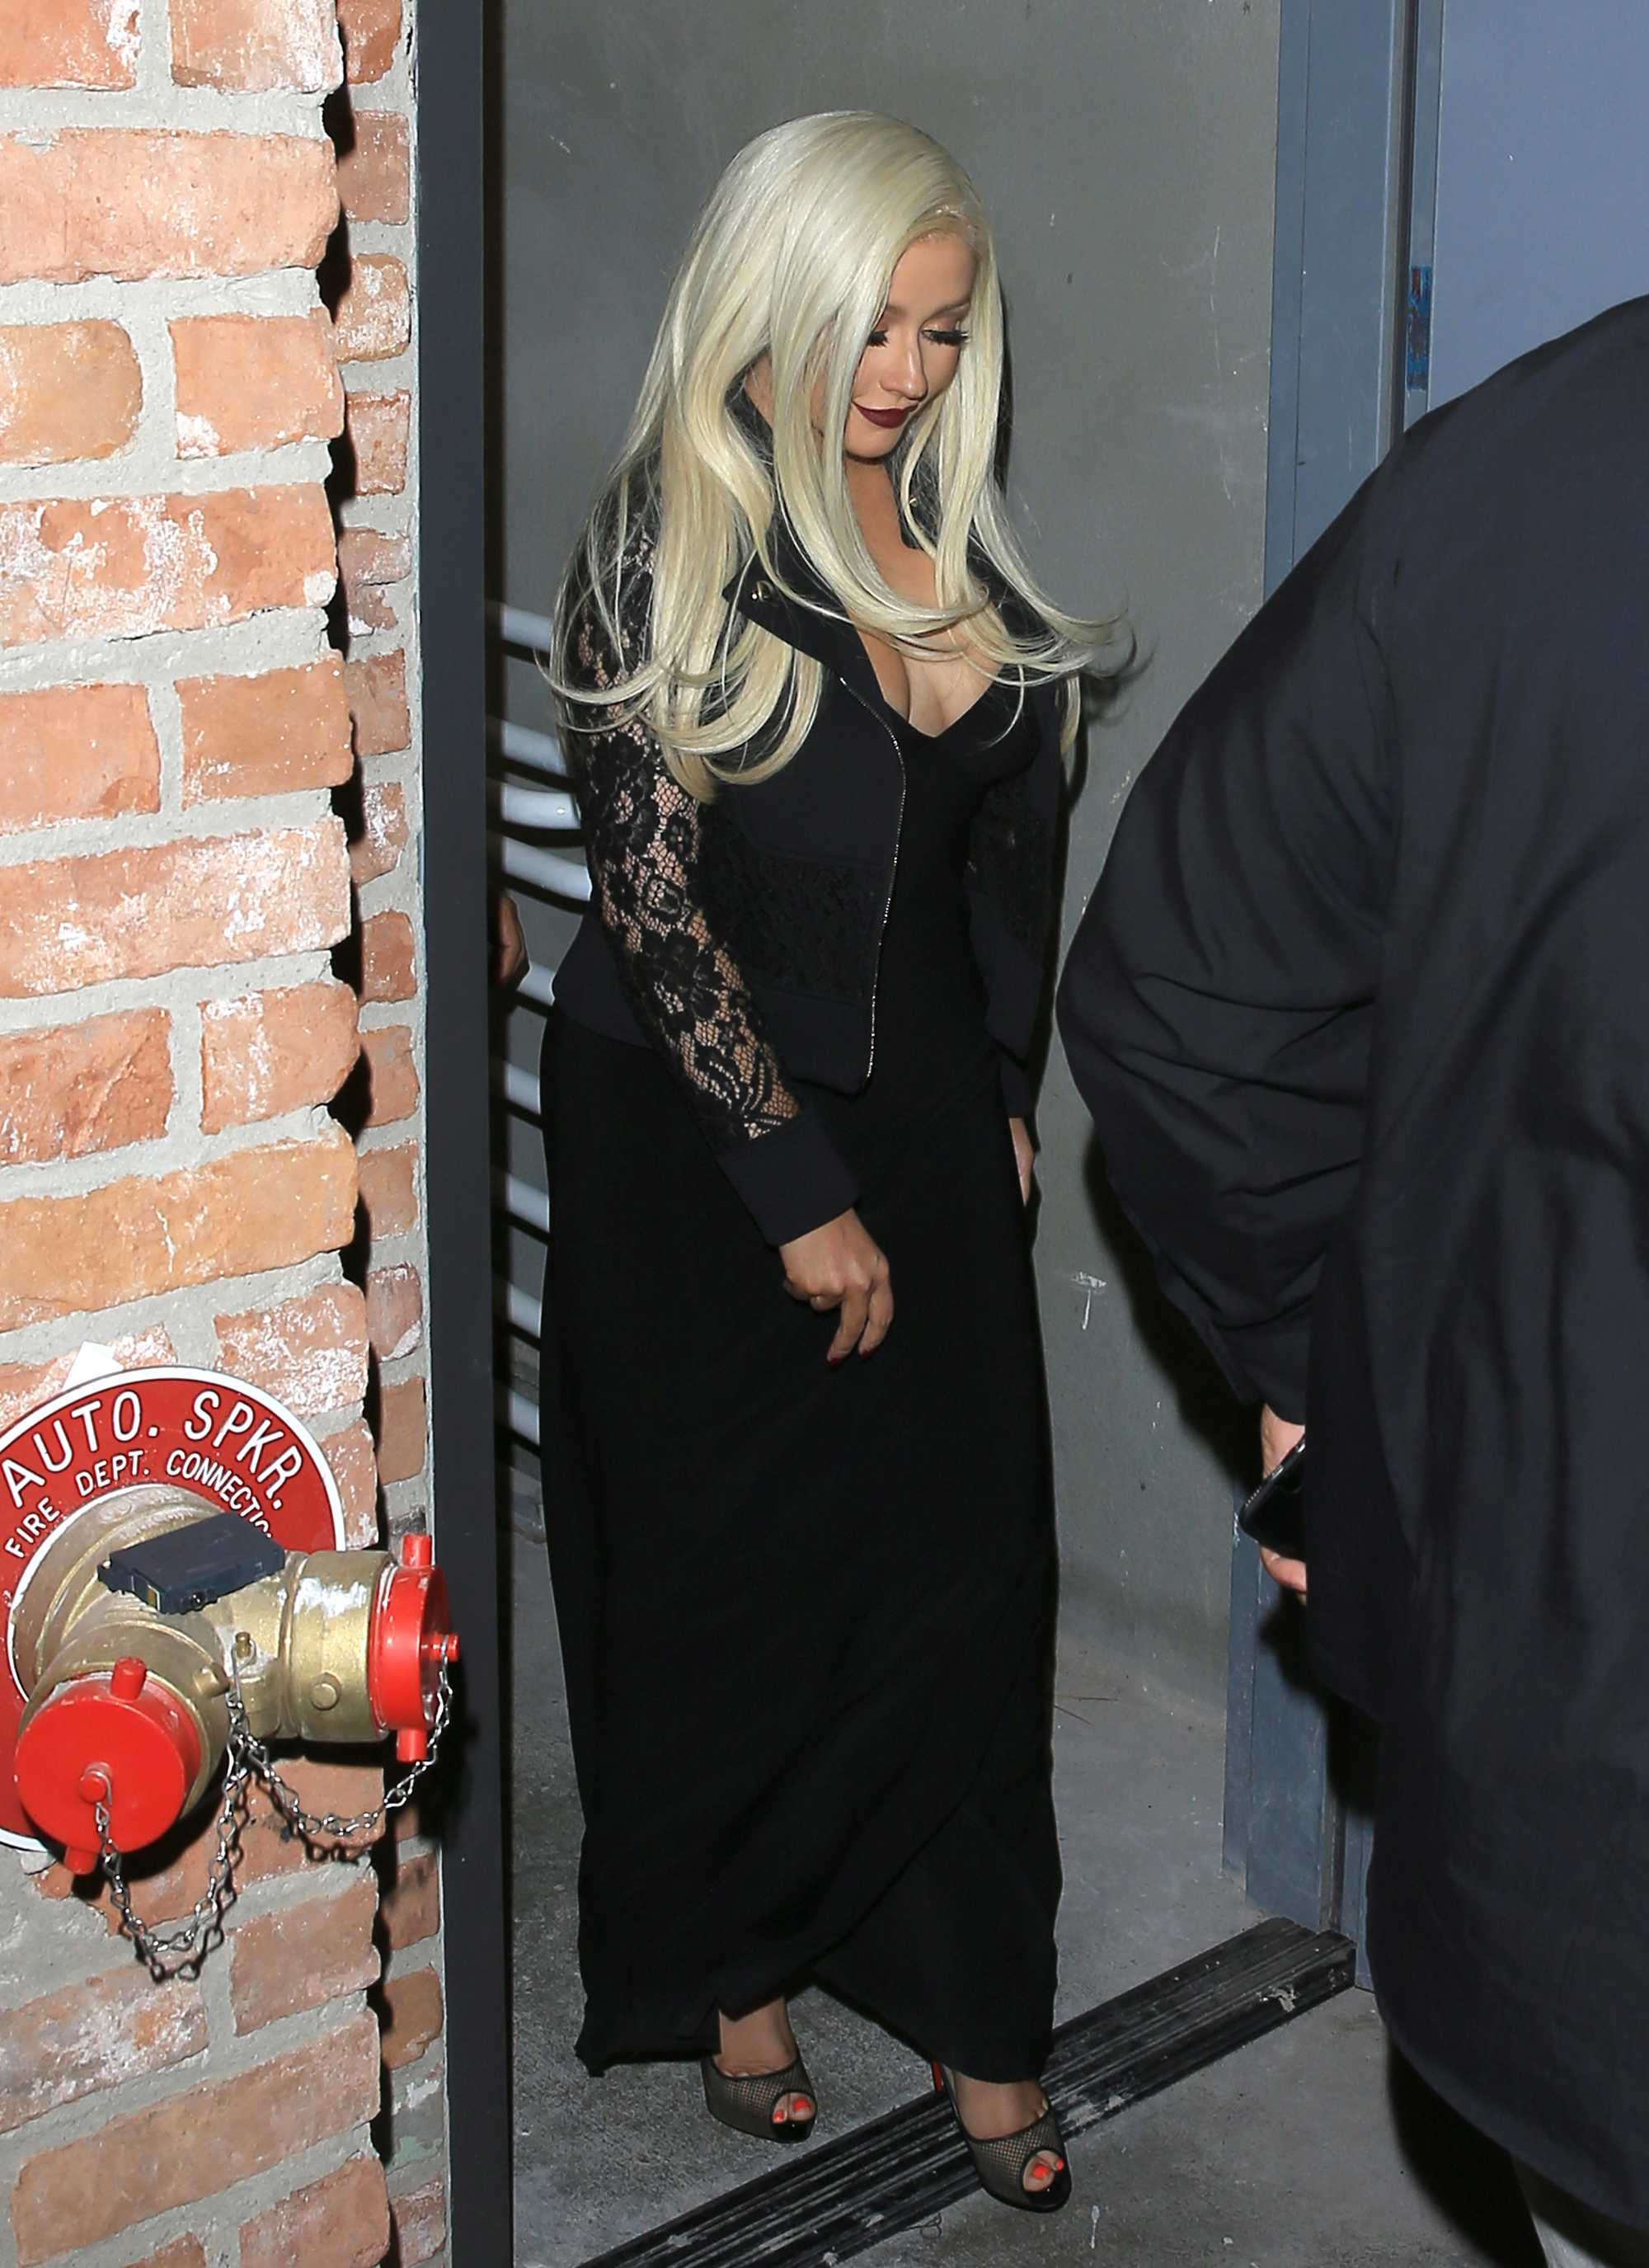 Christina_Aguilera_-_leaving_a_Club_in_Los_Angeles_on_April_25-04.jpg